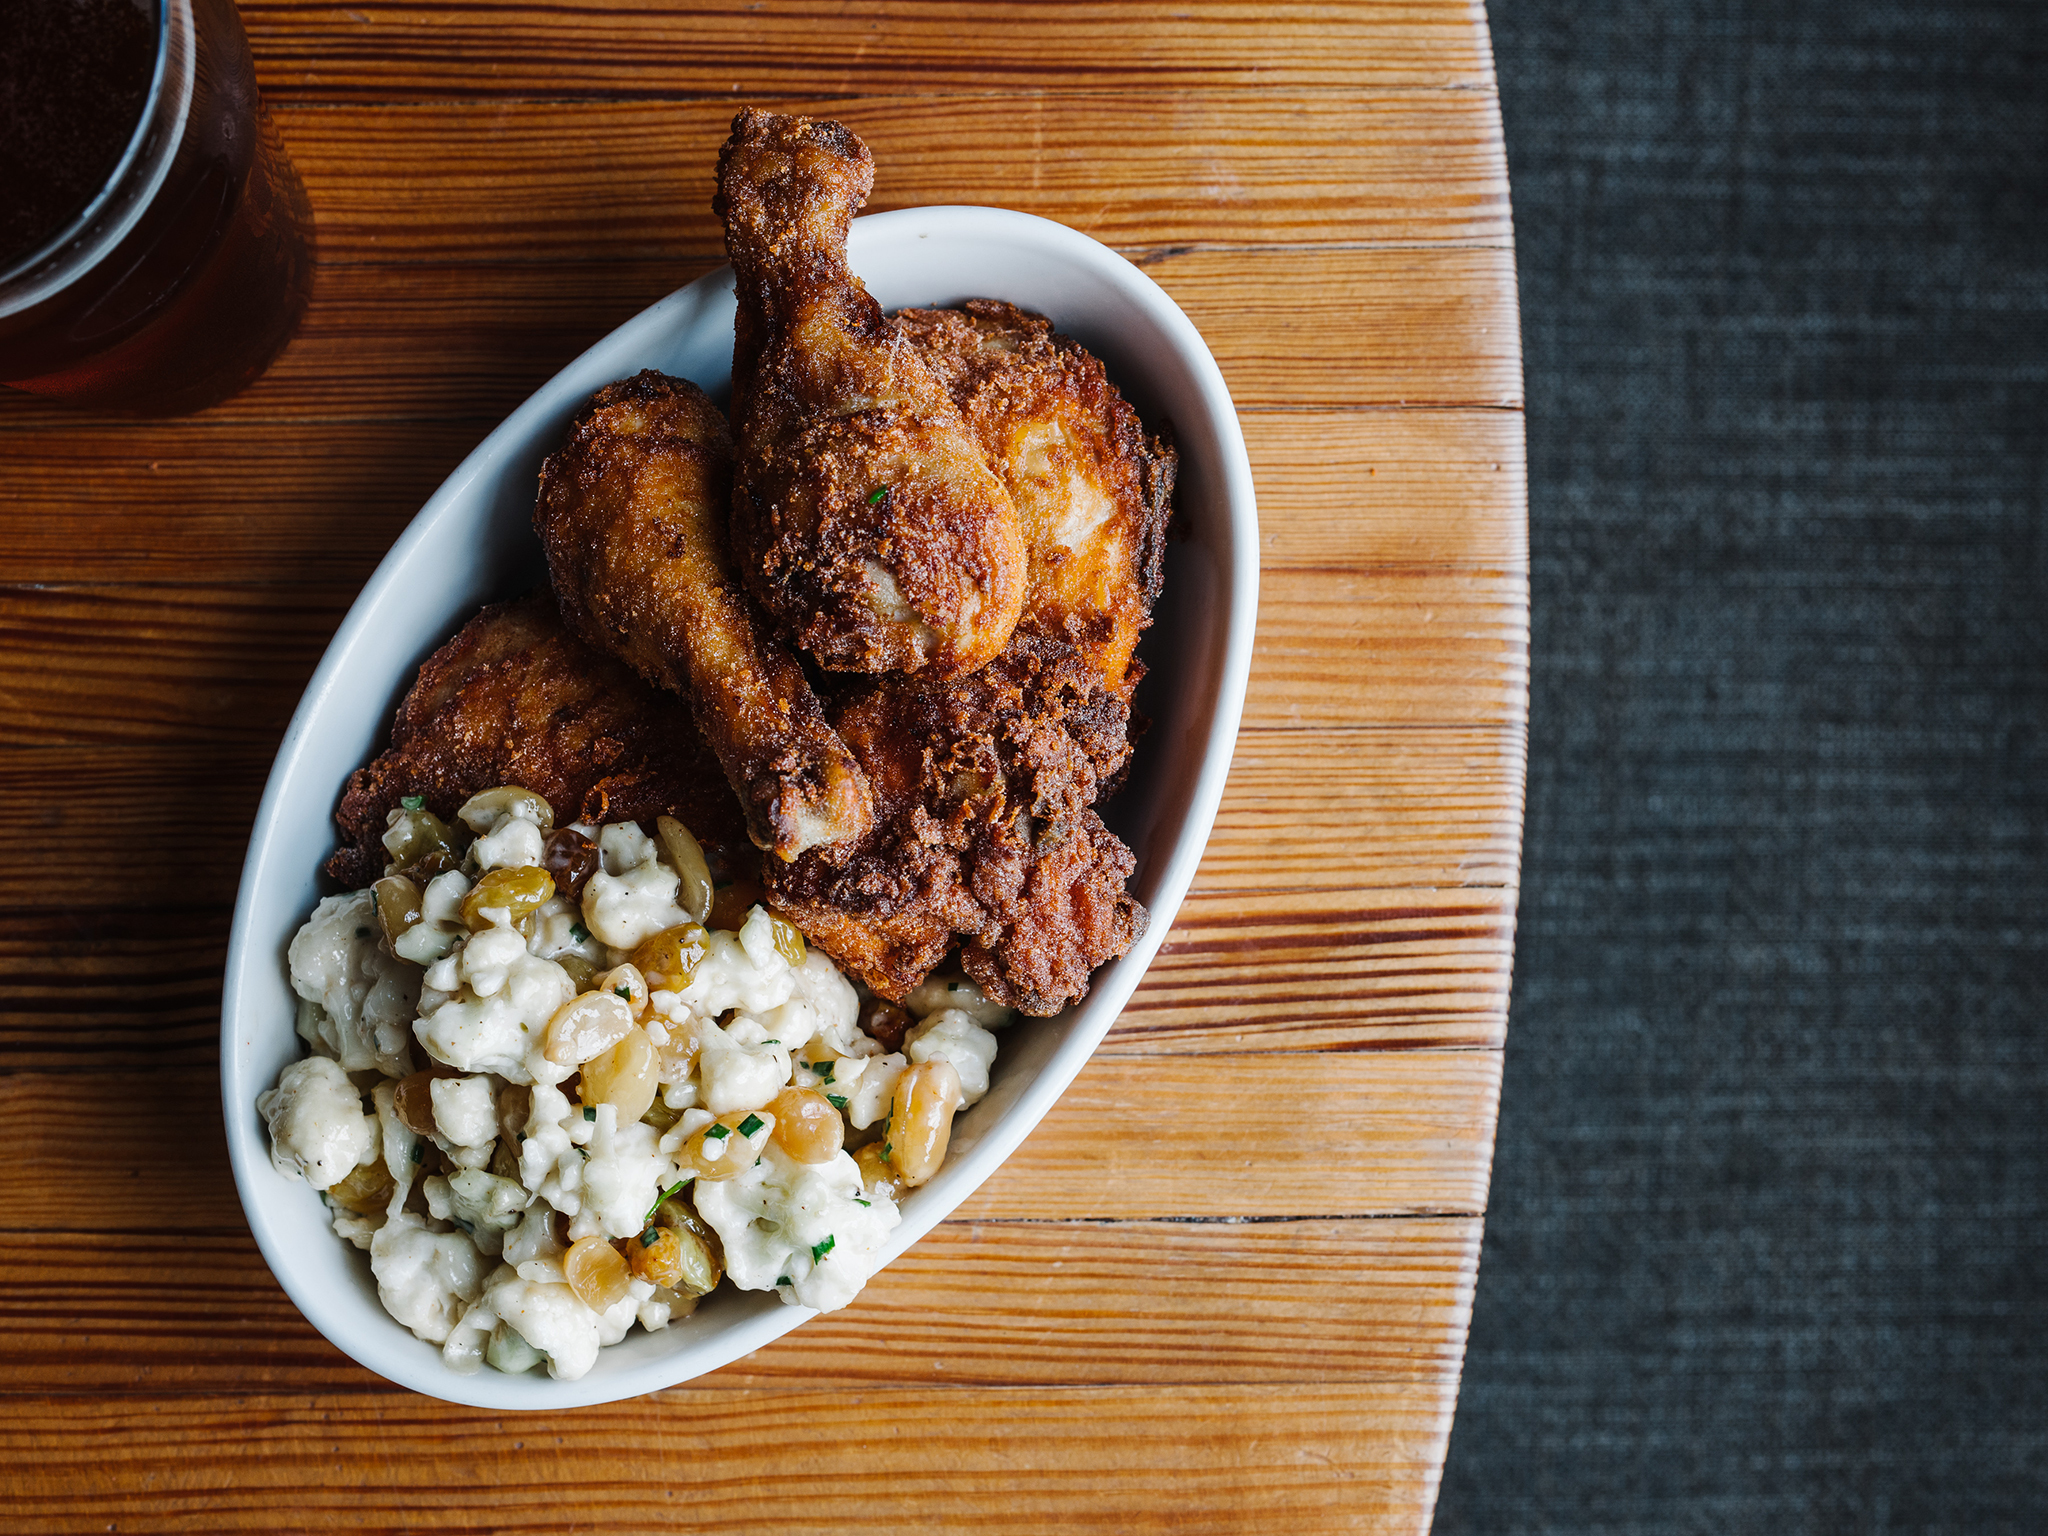 The 20 best Nashville restaurants